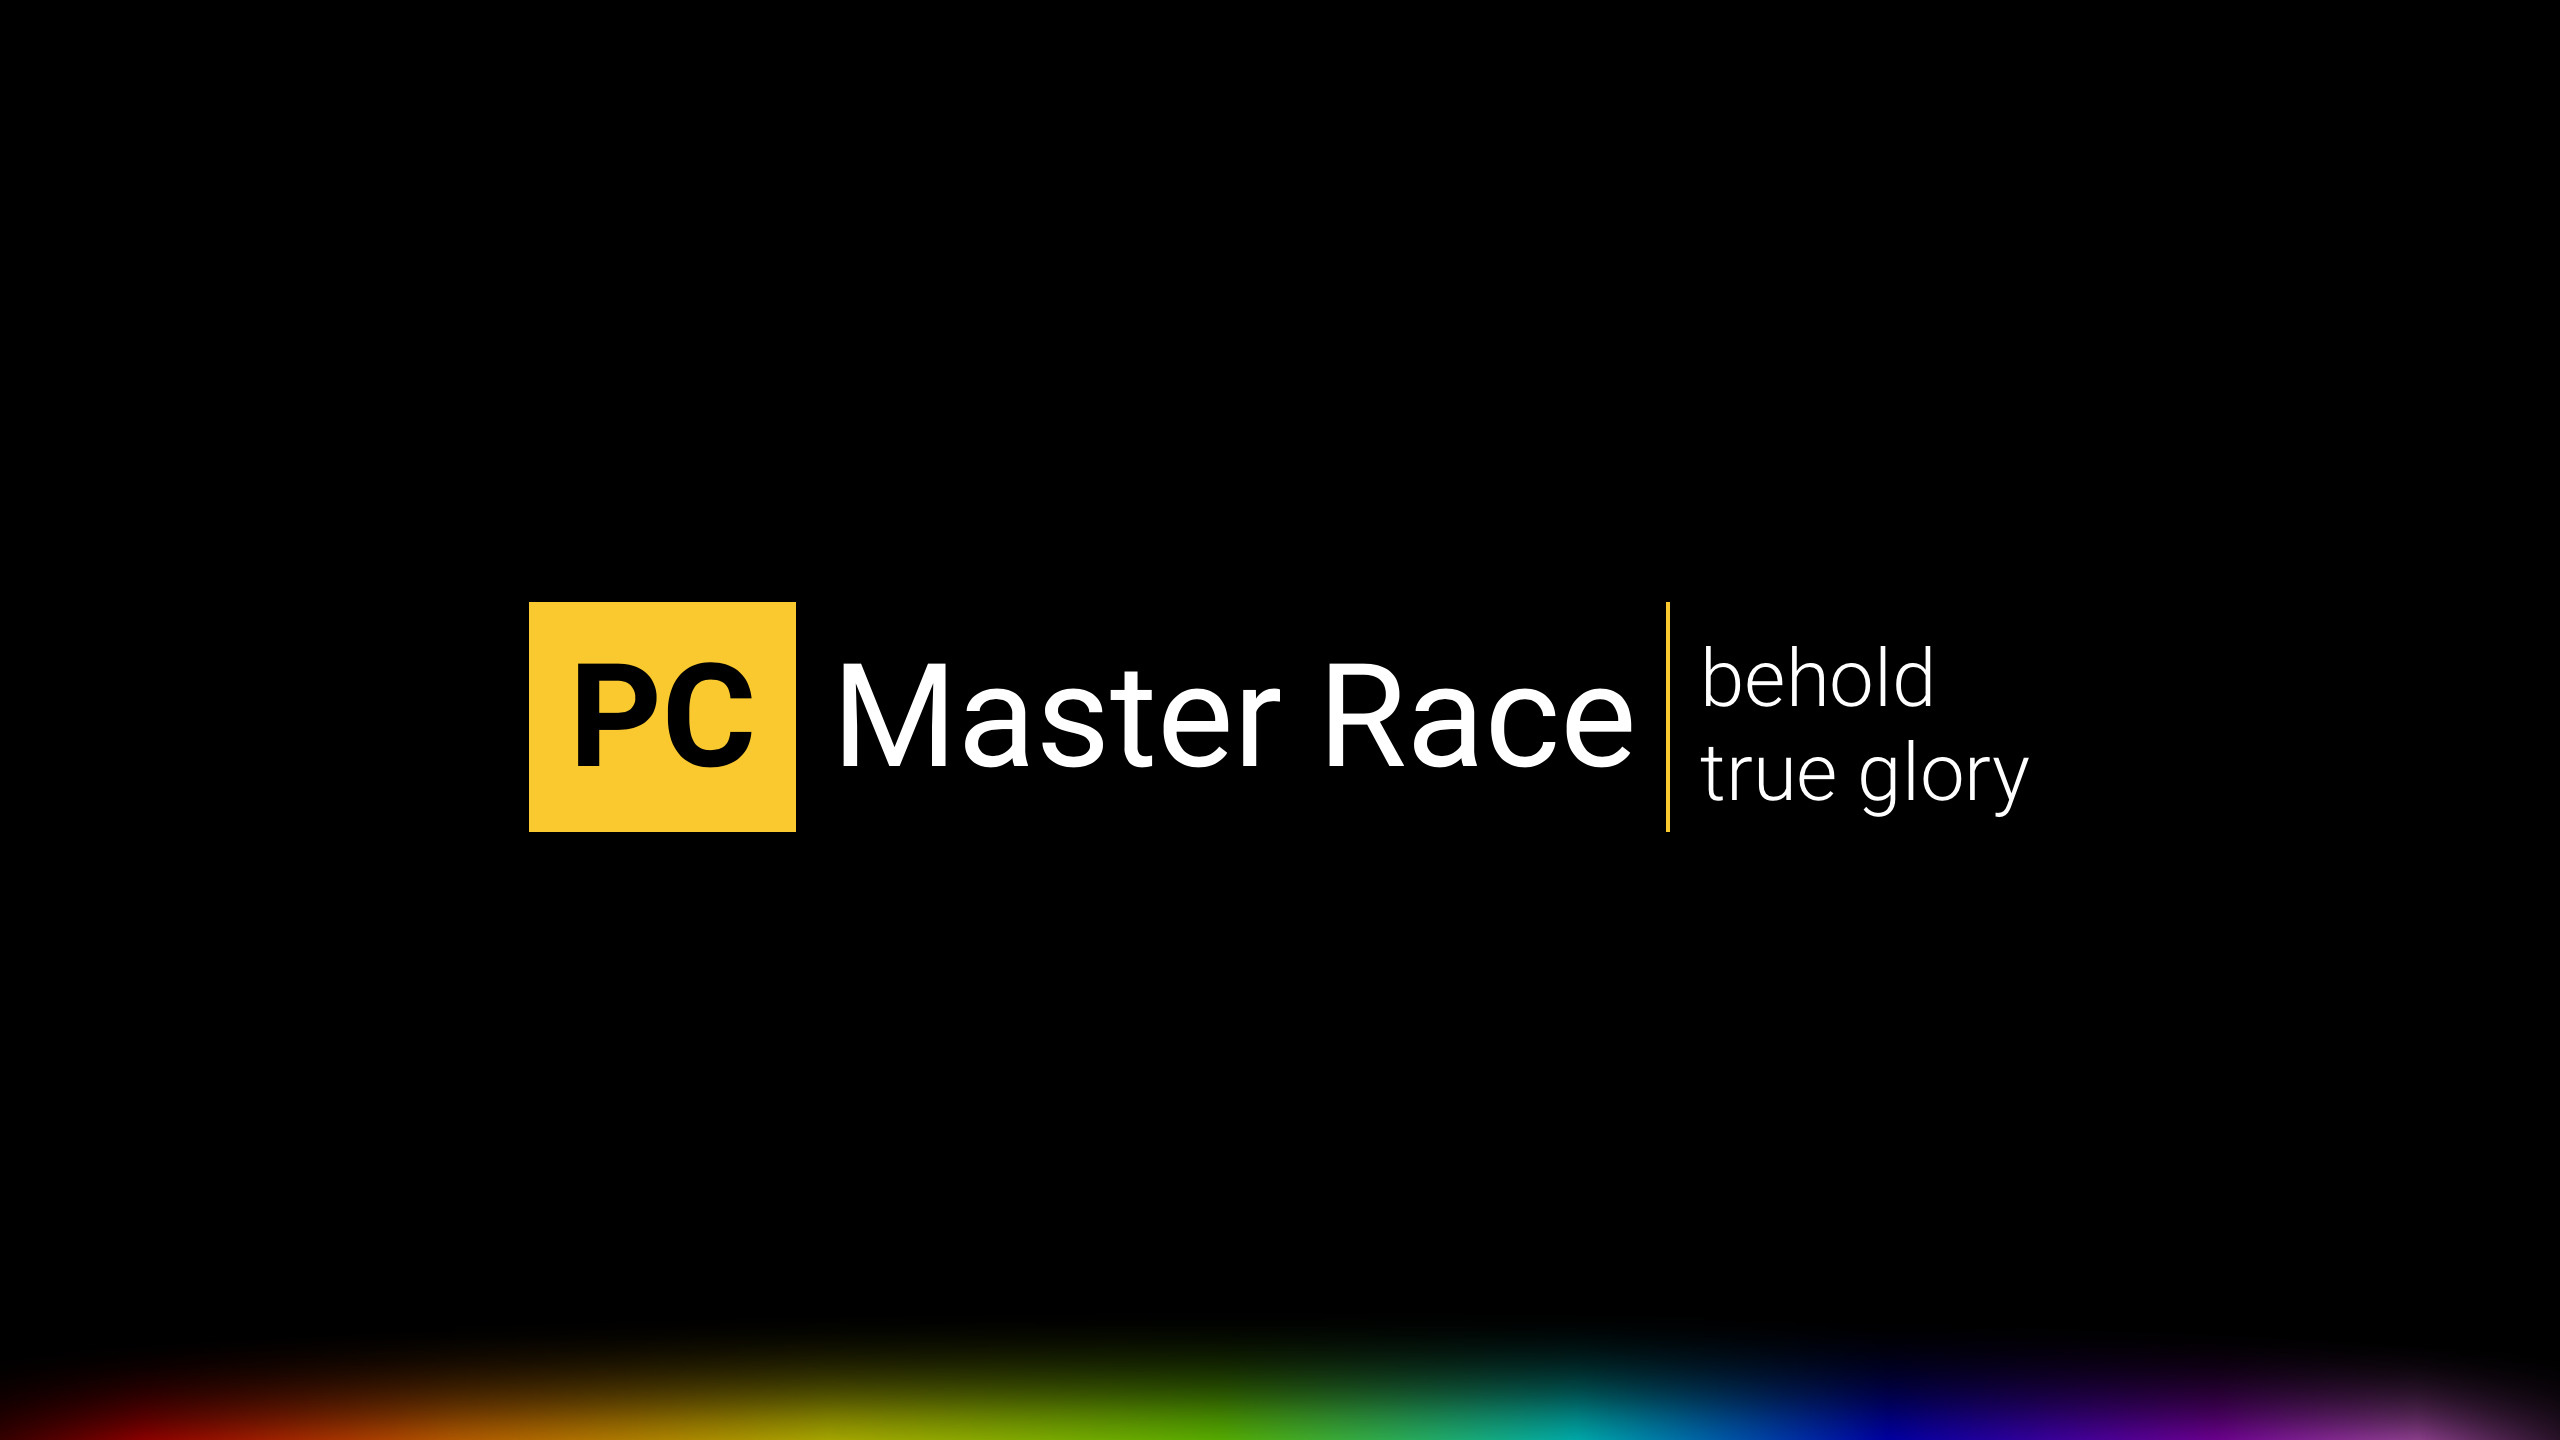 Pc Master Race Dark Wallpapers Hd Desktop And Mobile Backgrounds